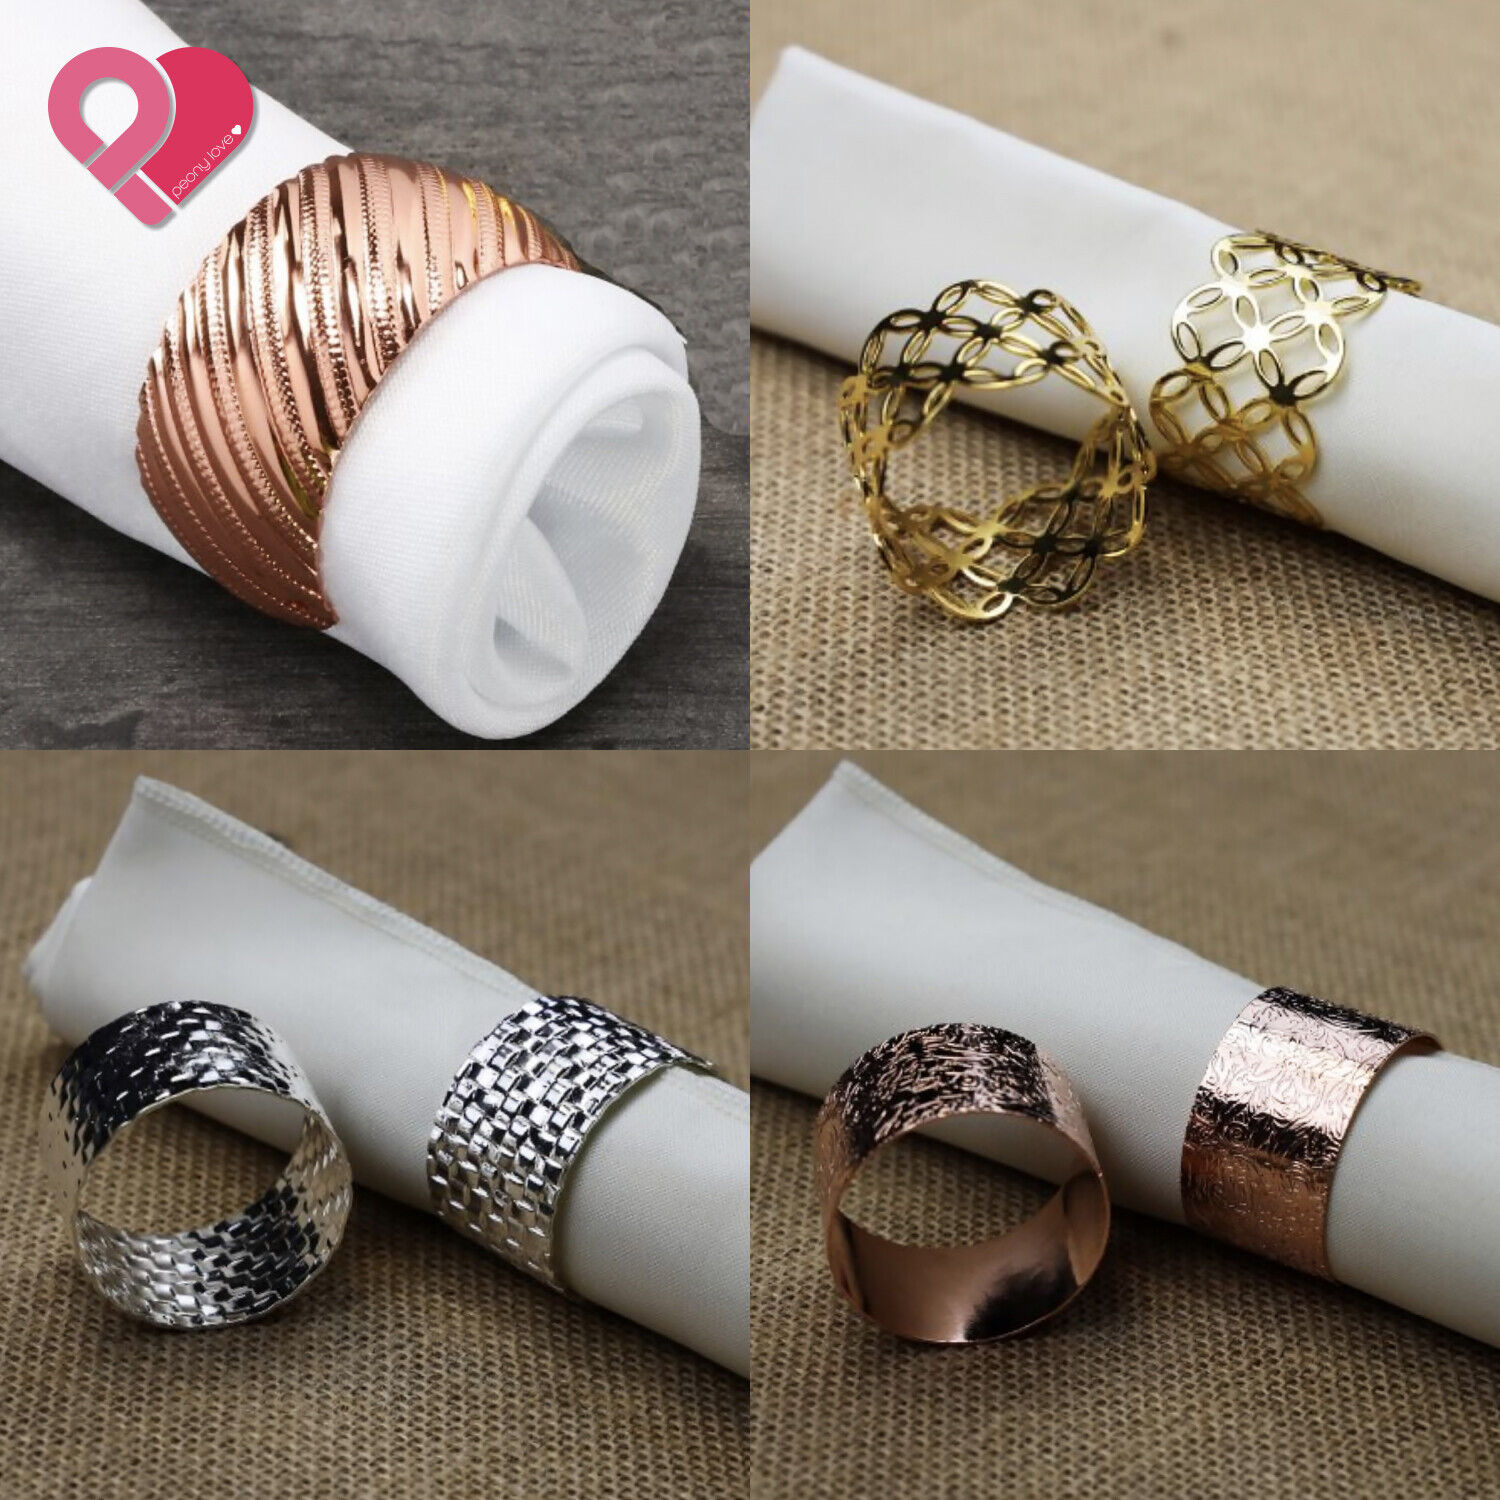 50 X White Butterfly Napkin Ring Serviette Holder Banquet Table Party Wedding For Sale Online Ebay